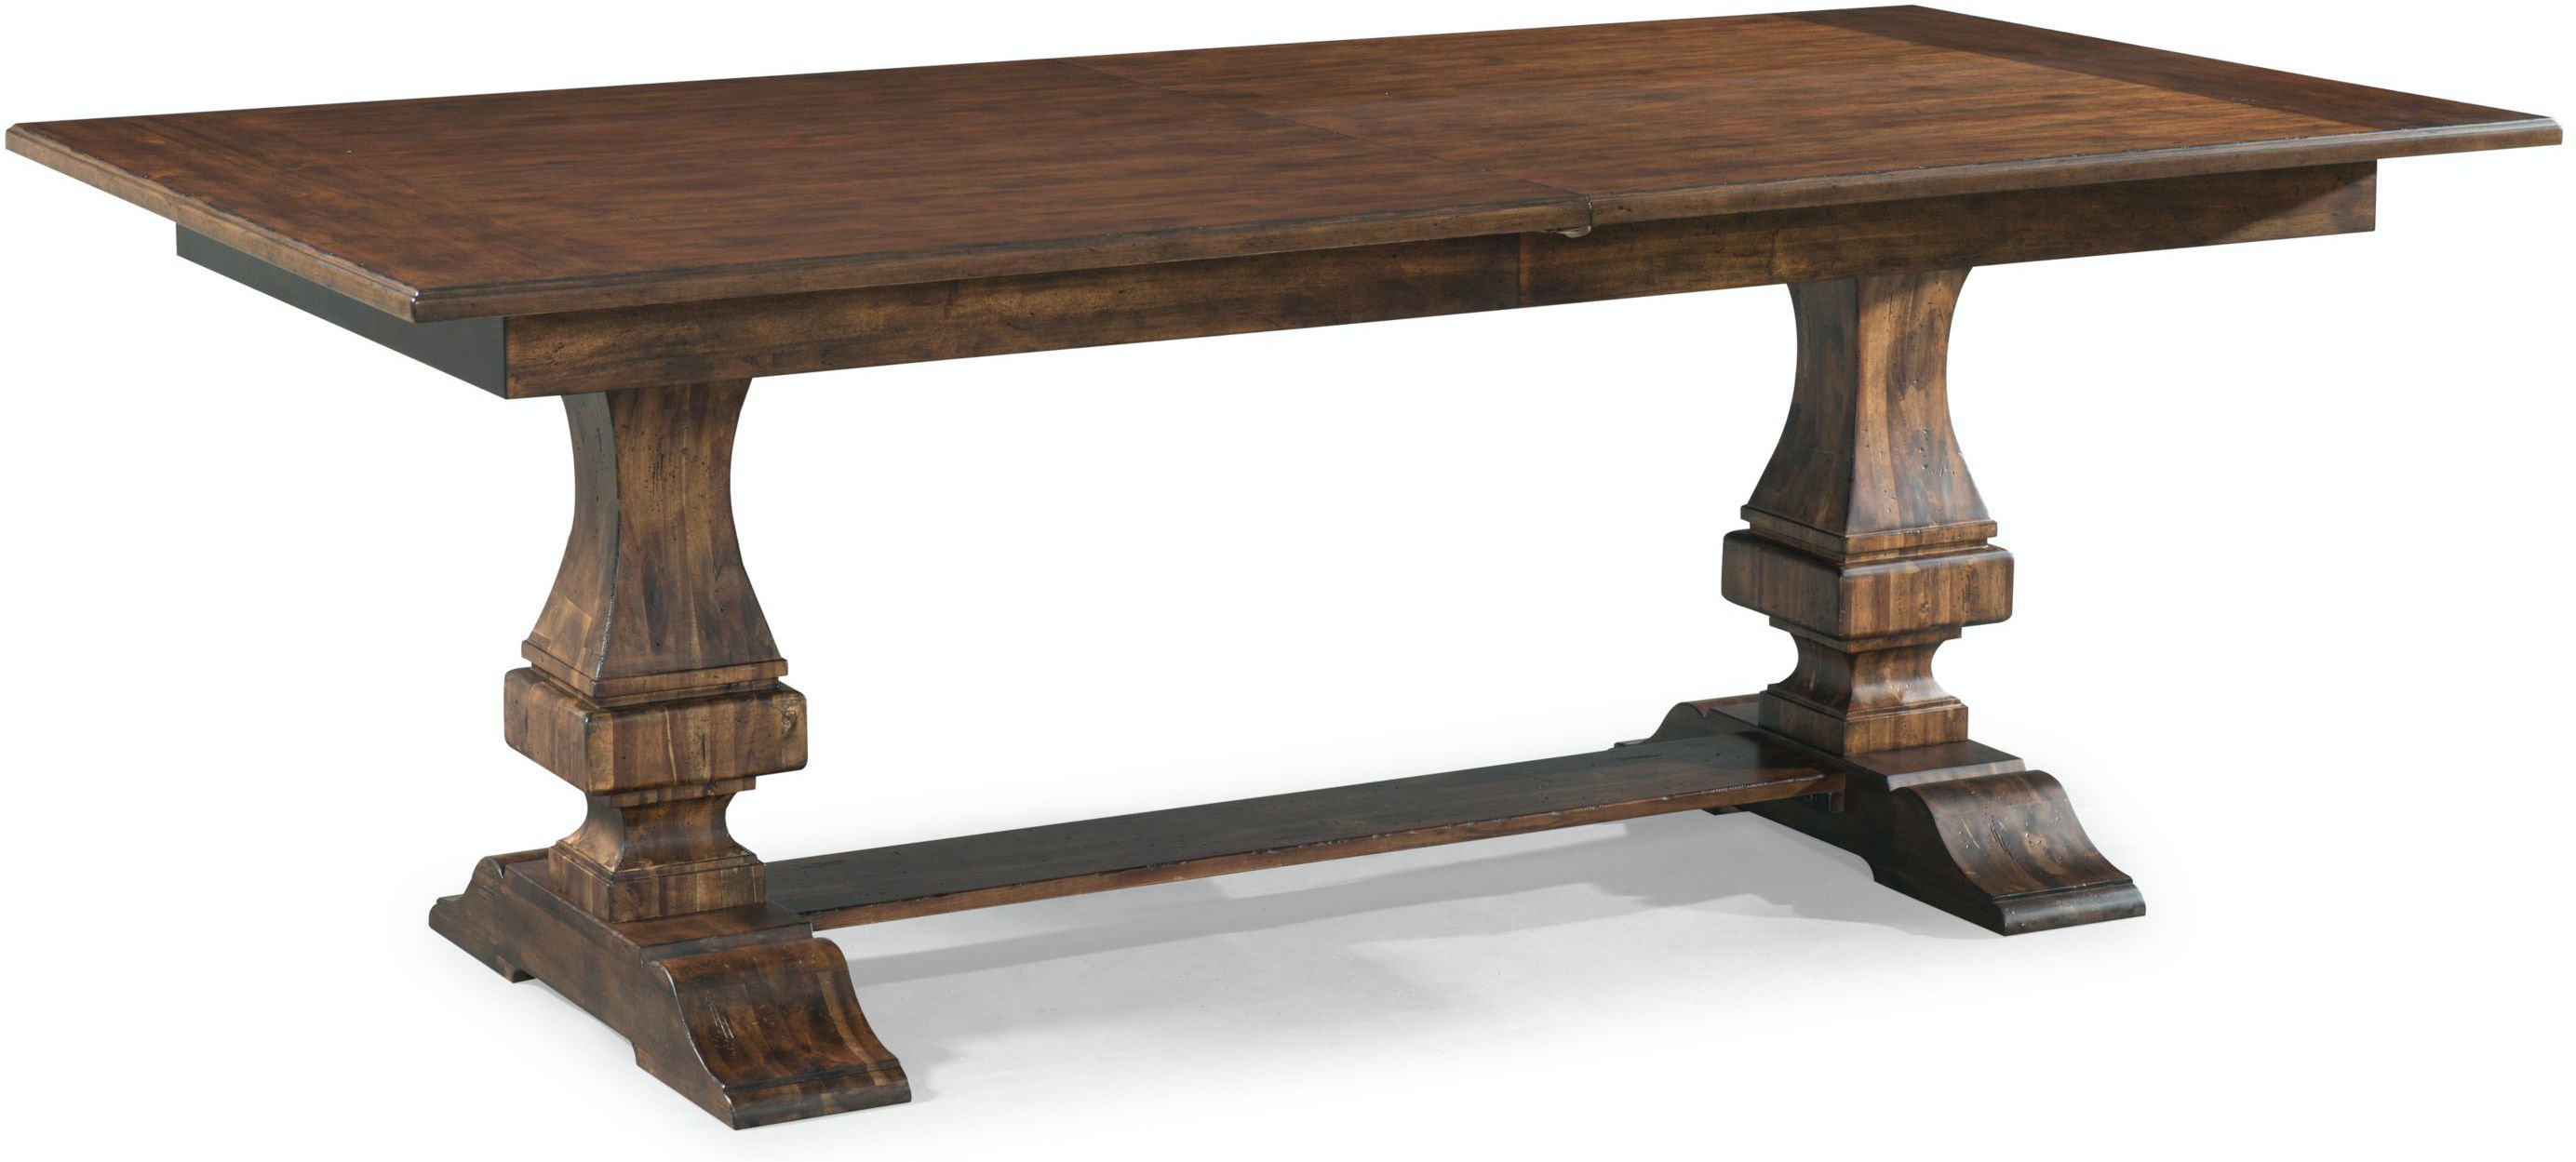 Trisha Yearwood Trisha s Trestle Table